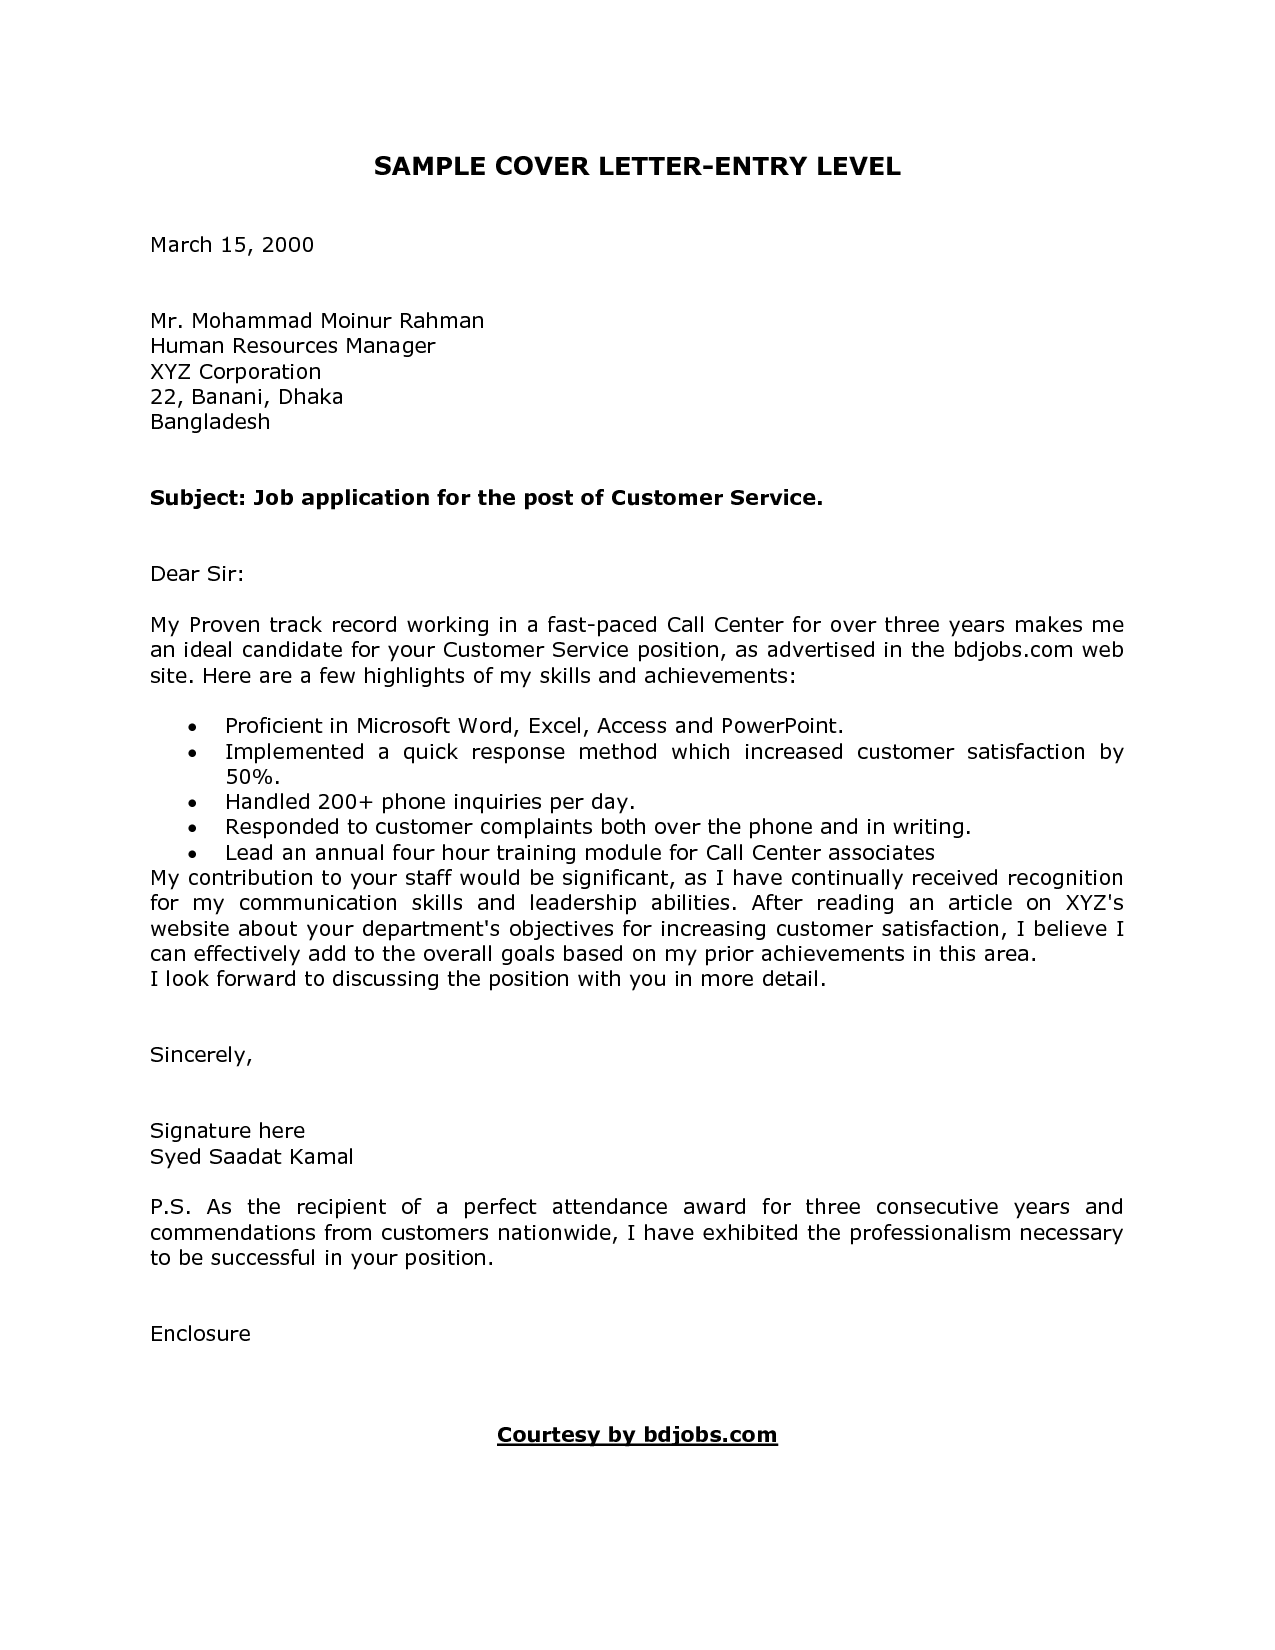 howto write a cover letter - how to write an amazing cover letter cover letters